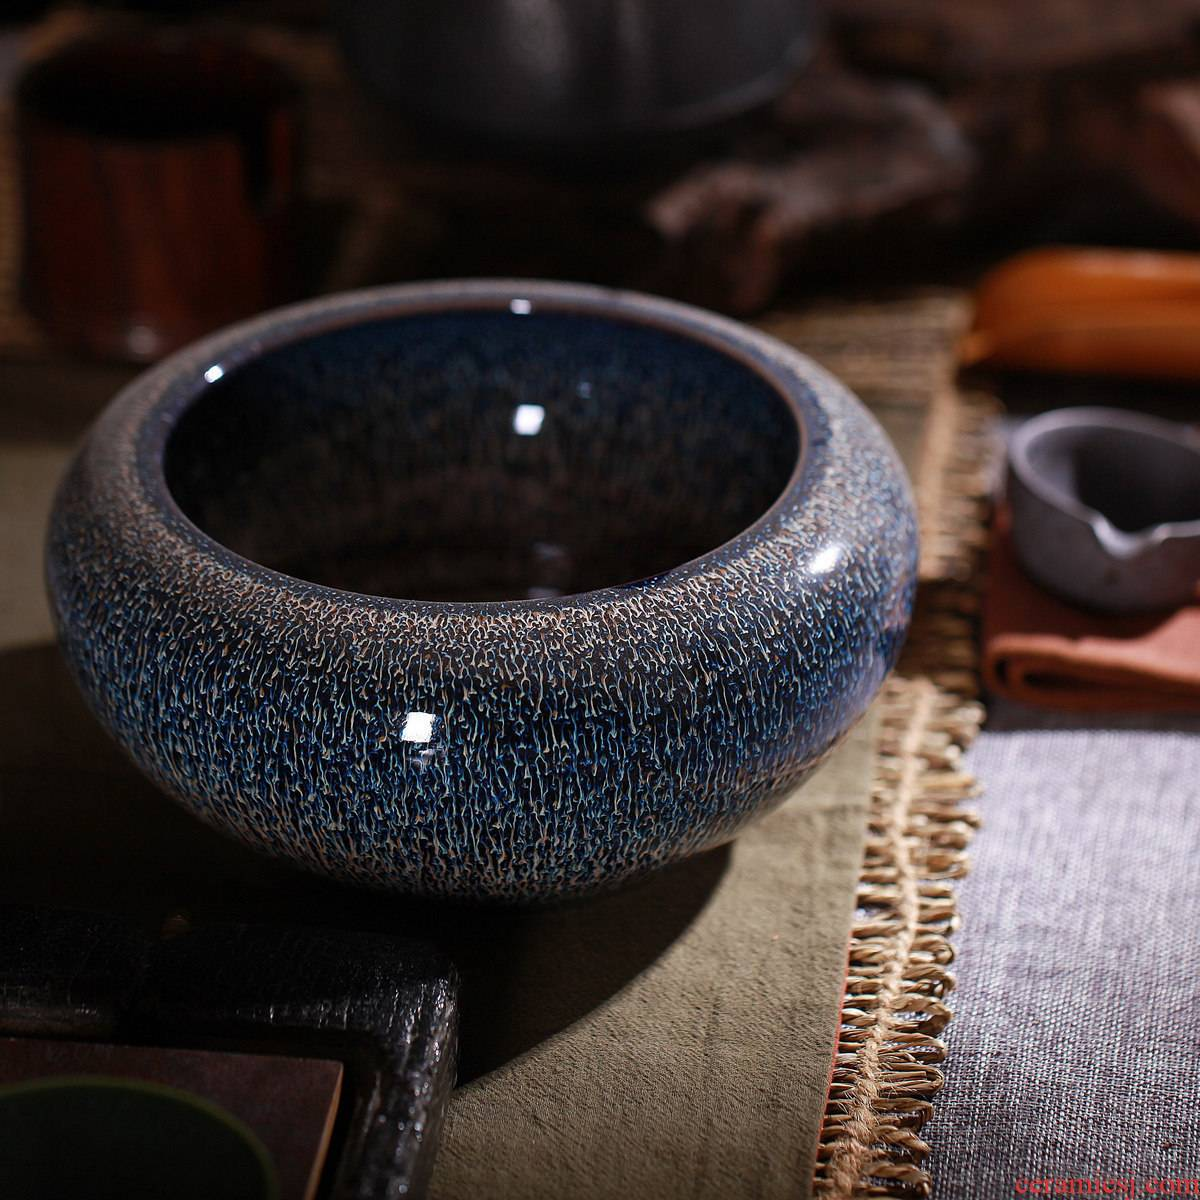 One thousand fire tea tea to wash large manual jingdezhen ceramic household variable writing brush washer tea accessories water restoring ancient ways